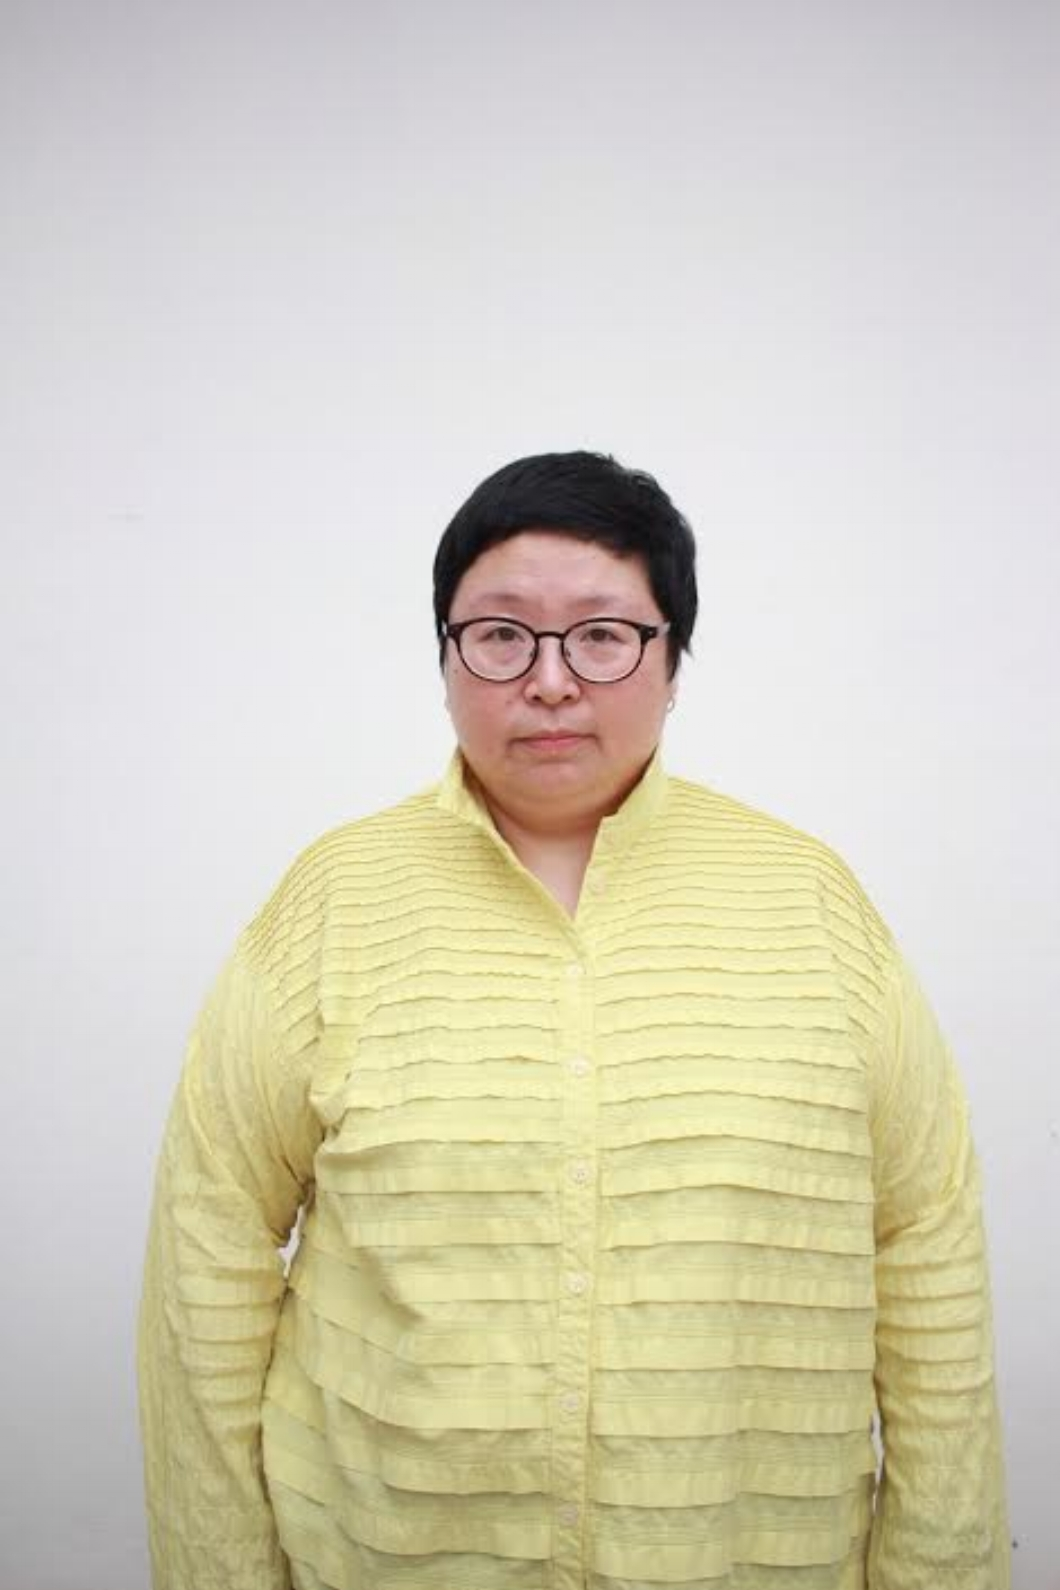 Chalida Uabumrungjit graduated in film from Thammasat University and film archiving from University of East Anglia,UK.She is one of the founding members of Thai Short Film and Video Festival which she served as Festival Director since 1997. She also programmes for Salaya Documentary Film Festival and Silent Film Festival in Thailand.  She coordinated programmes of Thai films for various international festivals and also involve in making a number of experimental films and documentaries. She is also one of the selection commitee of AND (Asian Network of Documentary) . She is one of the advocate for independent films and film preservation in Thailand. Currently she works as Deputy Director of the Film Archive, Thailand.